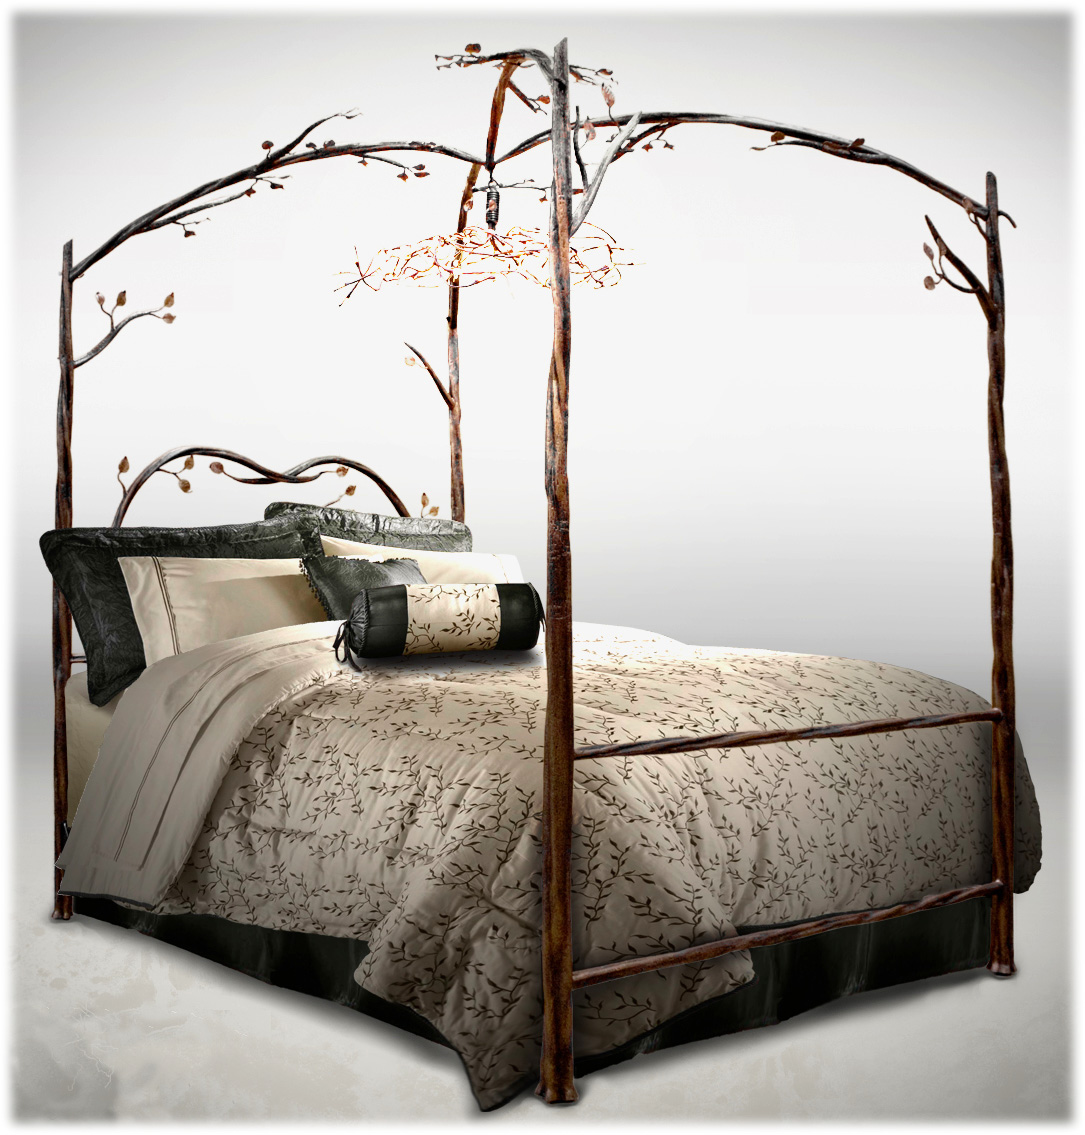 1085x1135px 10 Popular Forest Canopy Bed Picture in Bedroom